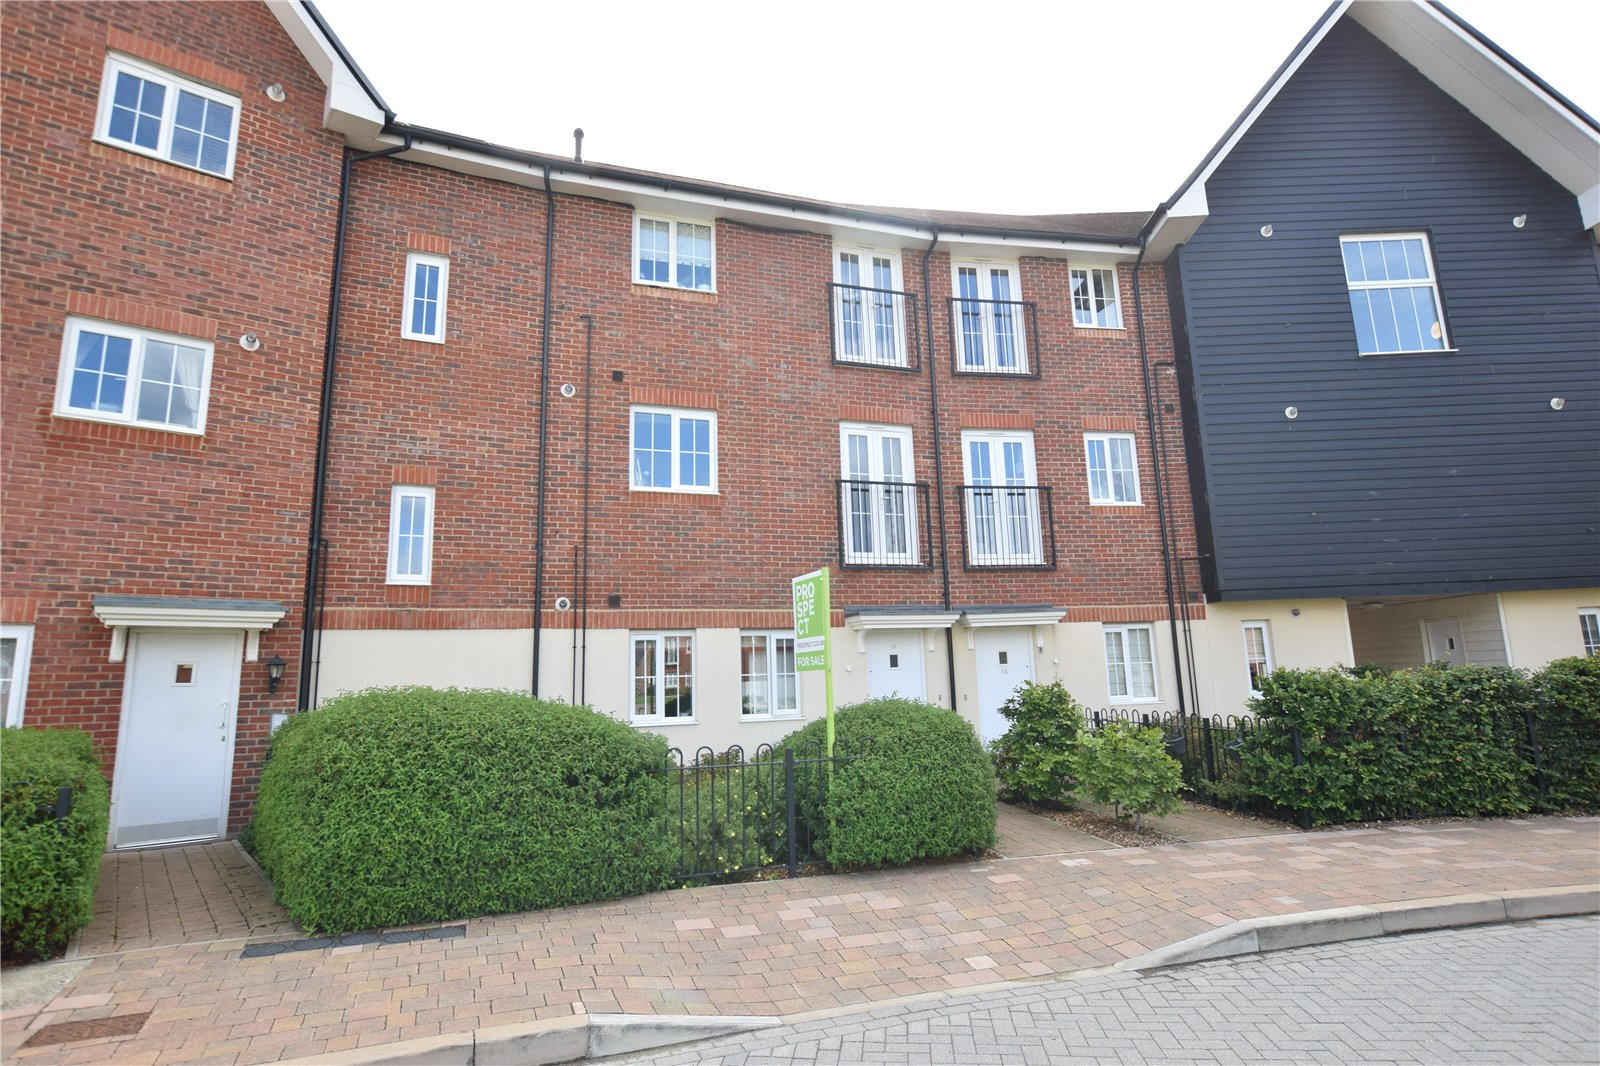 2 Bedrooms Apartment Flat for sale in Fulmar Crescent, Bracknell, Berkshire, RG12